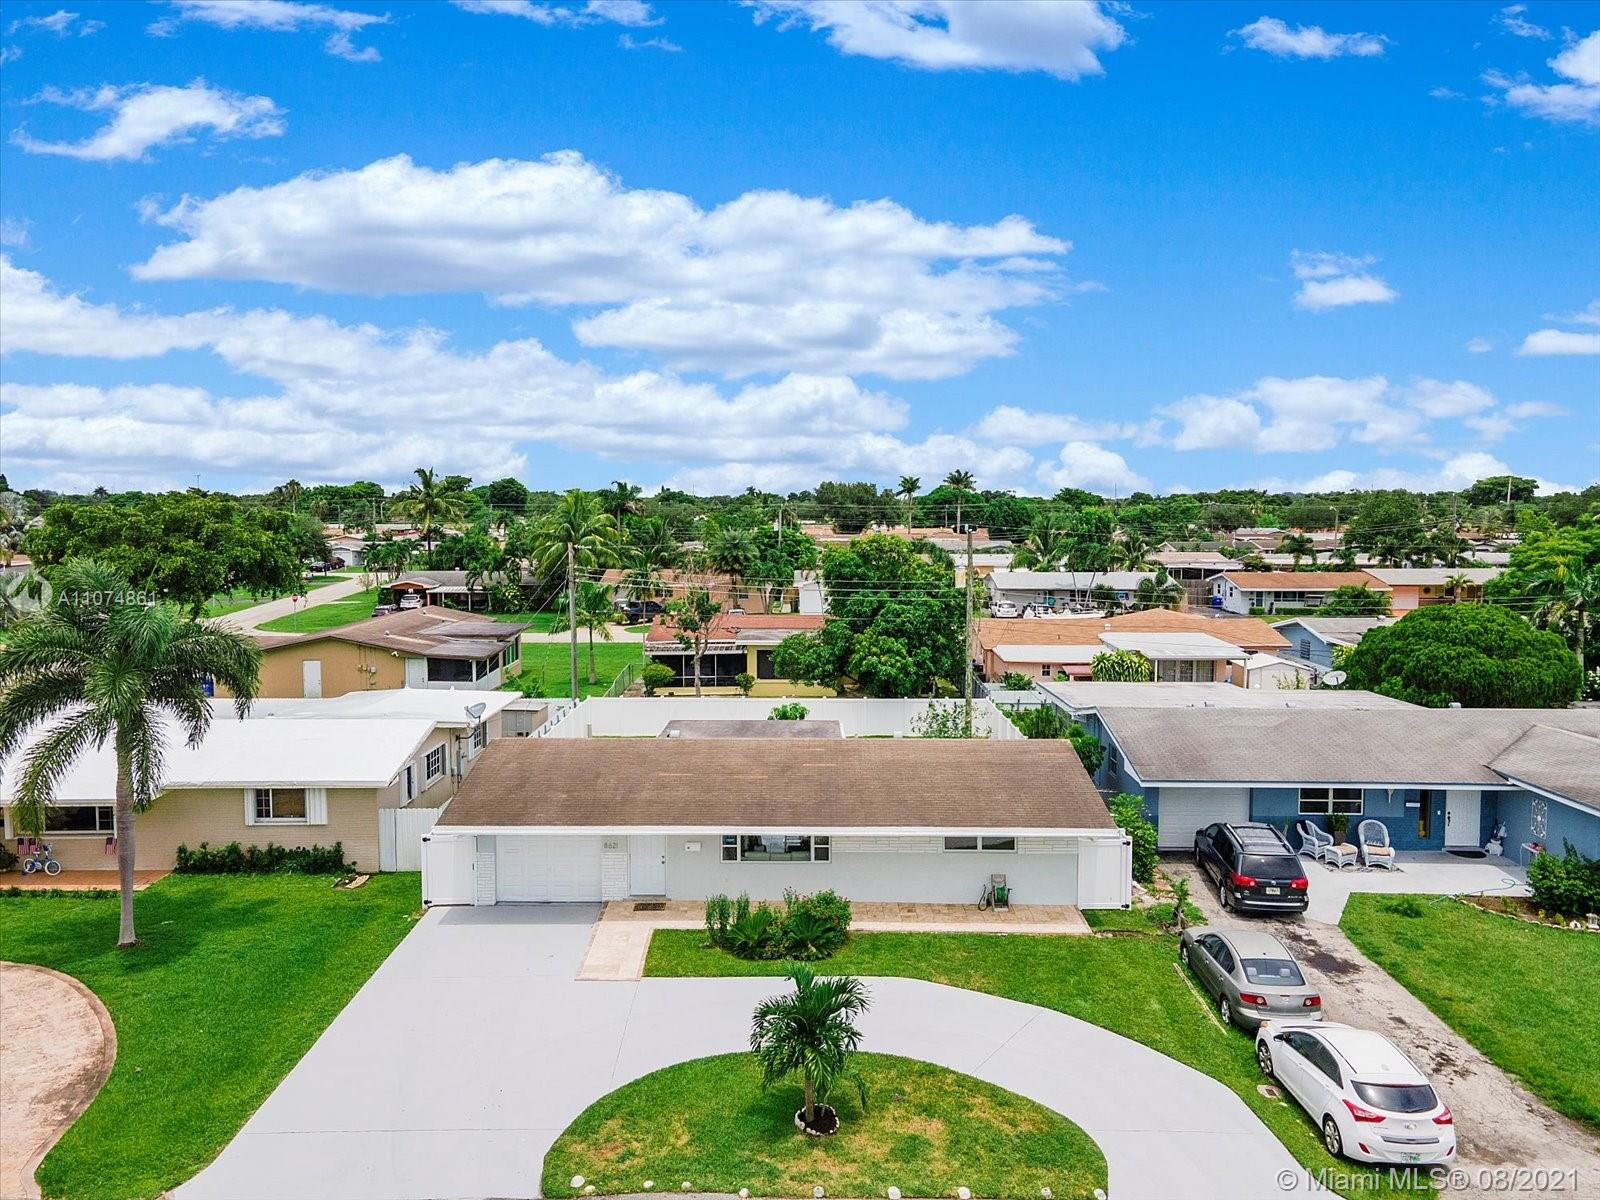 Boulevard Heights - 8621 NW 14th St, Pembroke Pines, FL 33024